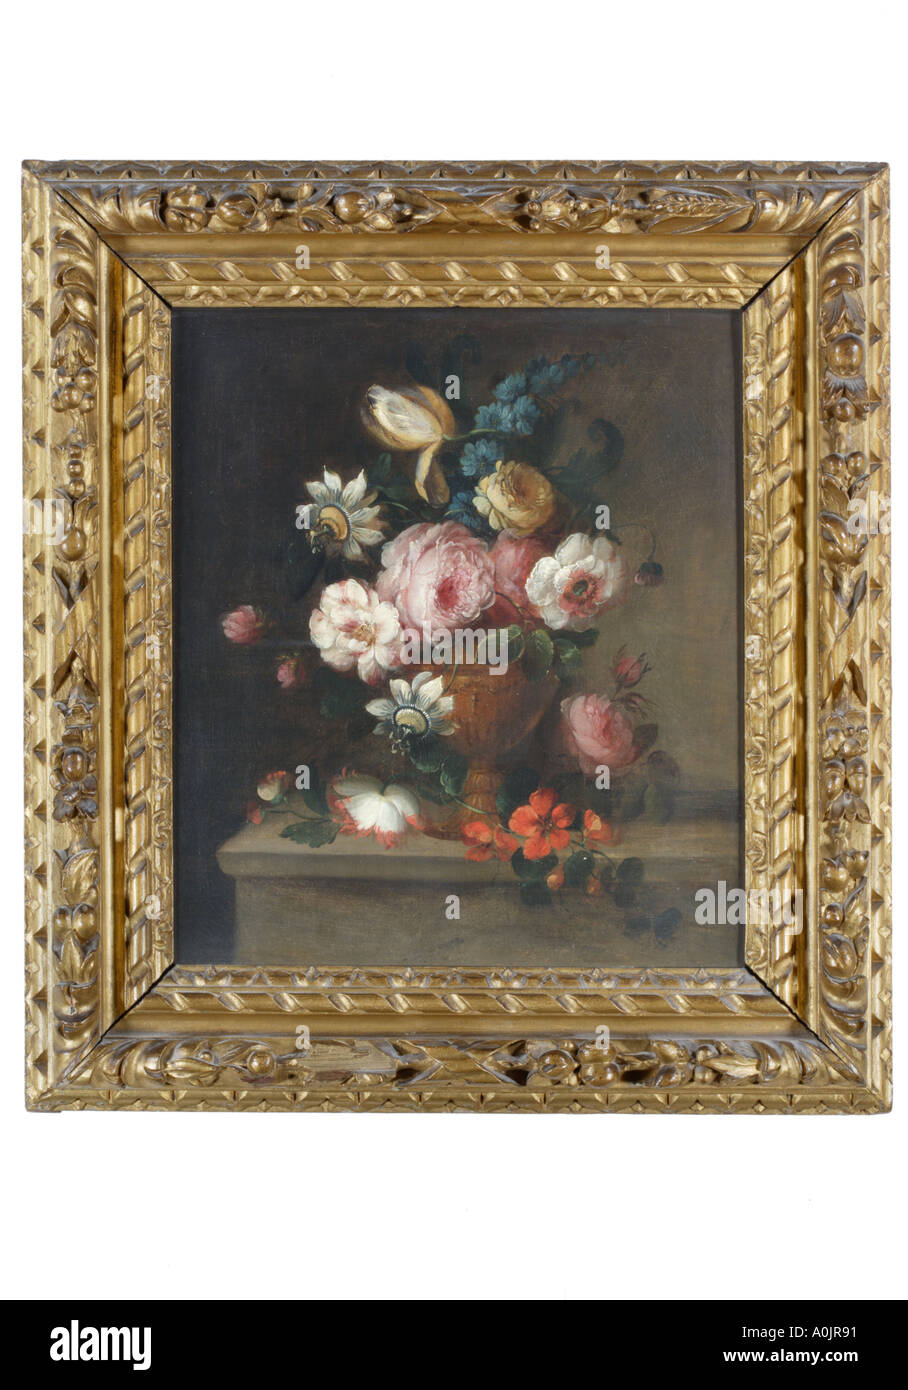 Oil Painting Of Flowers In A Vase Surrounded By A Gold Coloured Frame Stock Photo Royalty Free